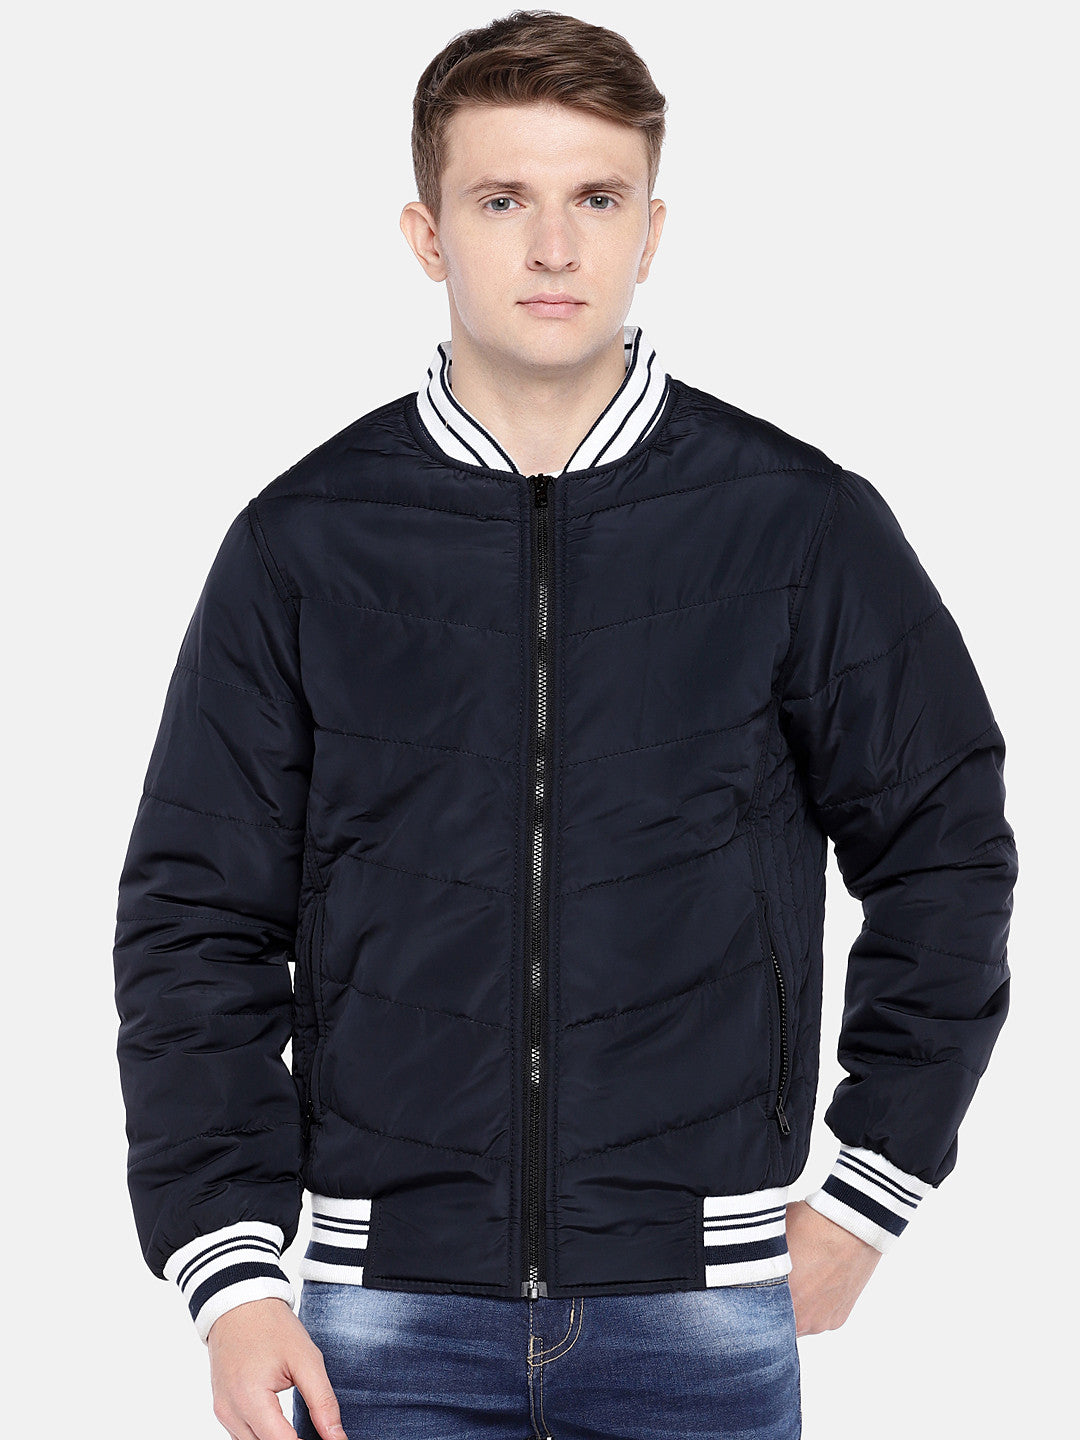 Navy Blue Solid Bomber-1